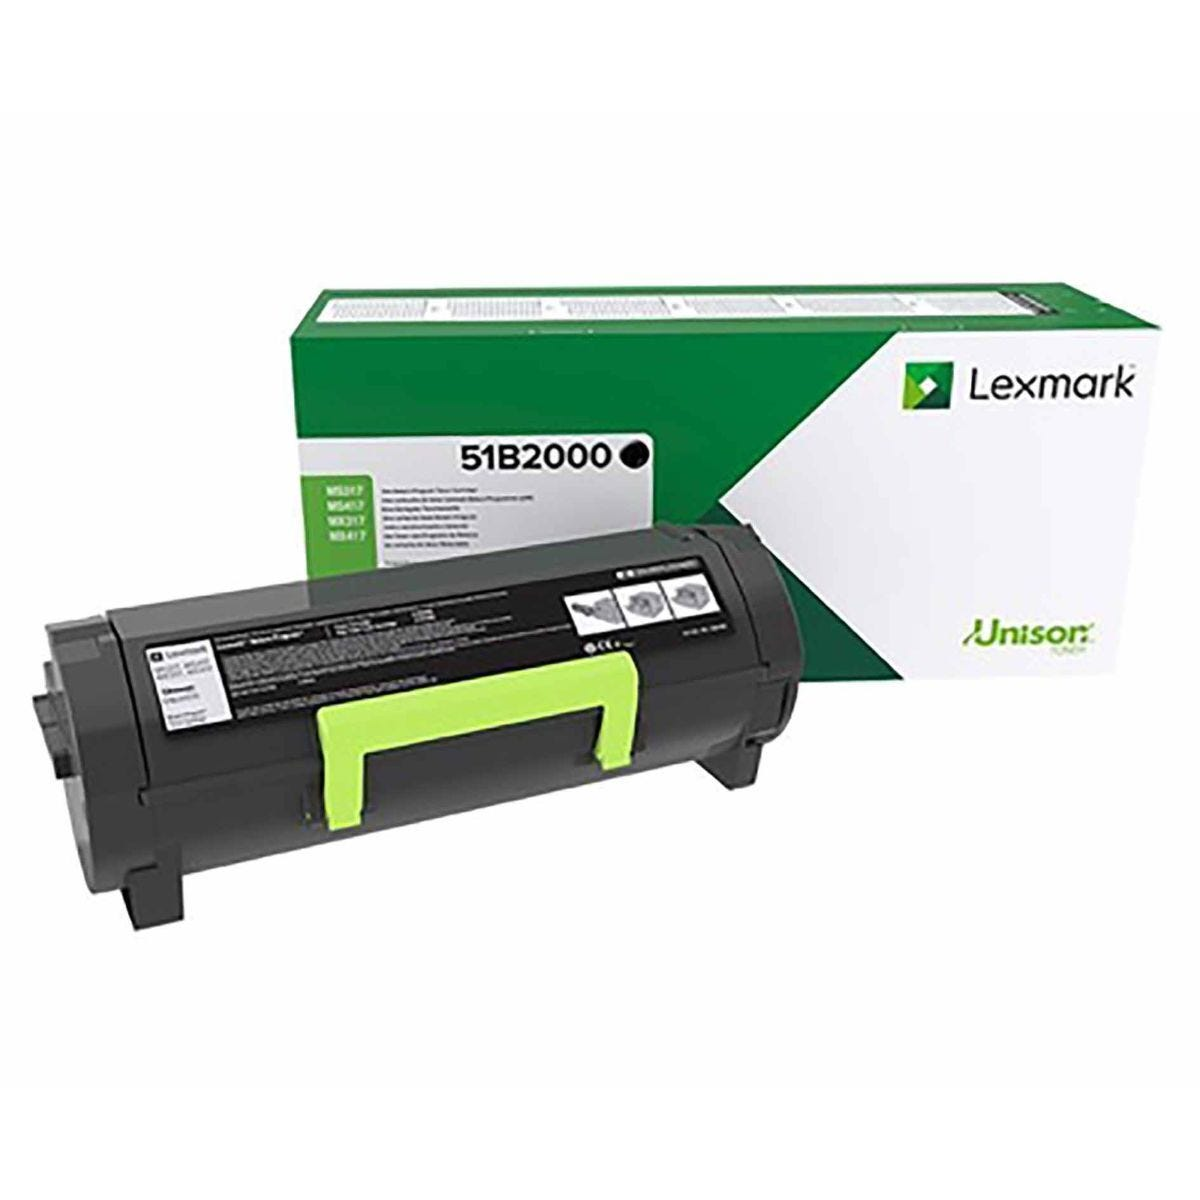 Lexmark 51B2000 Black Original Toner Cartridge